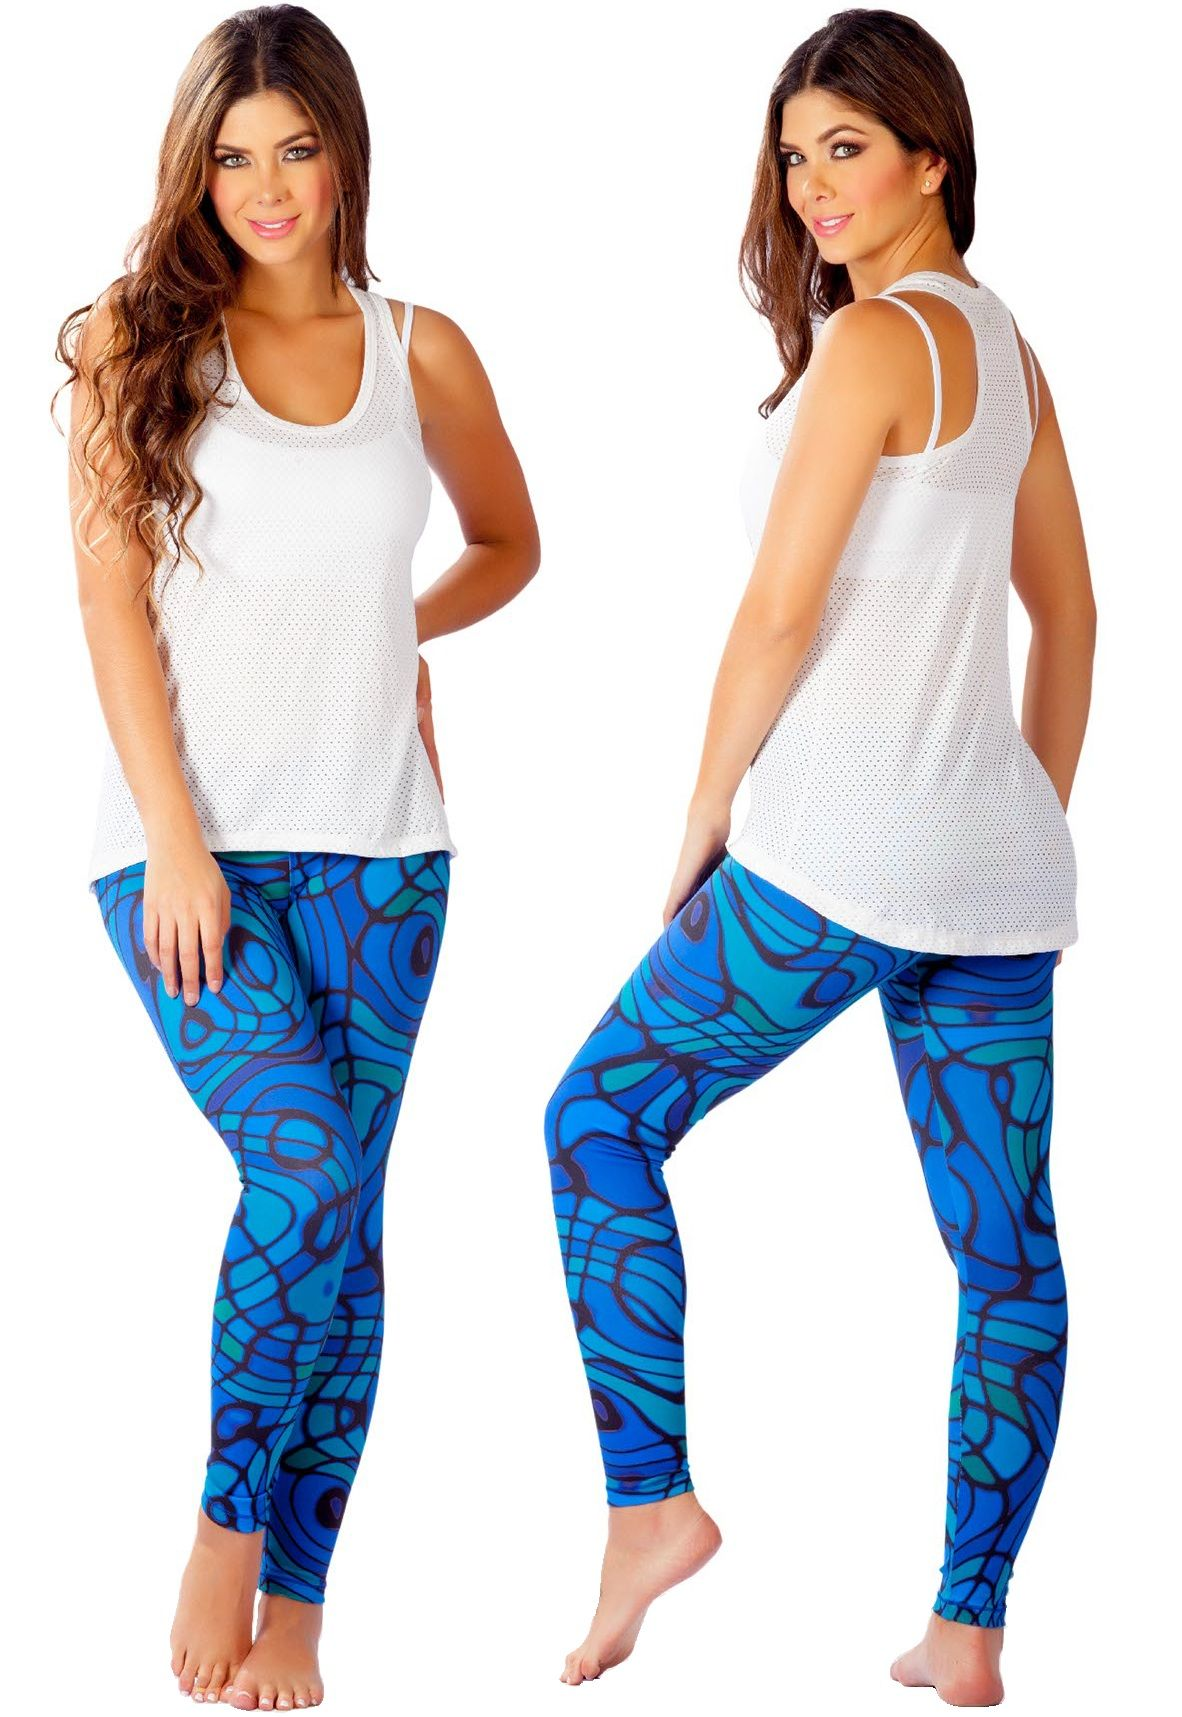 protokolo 2640 leggings women workout clothes gym wear